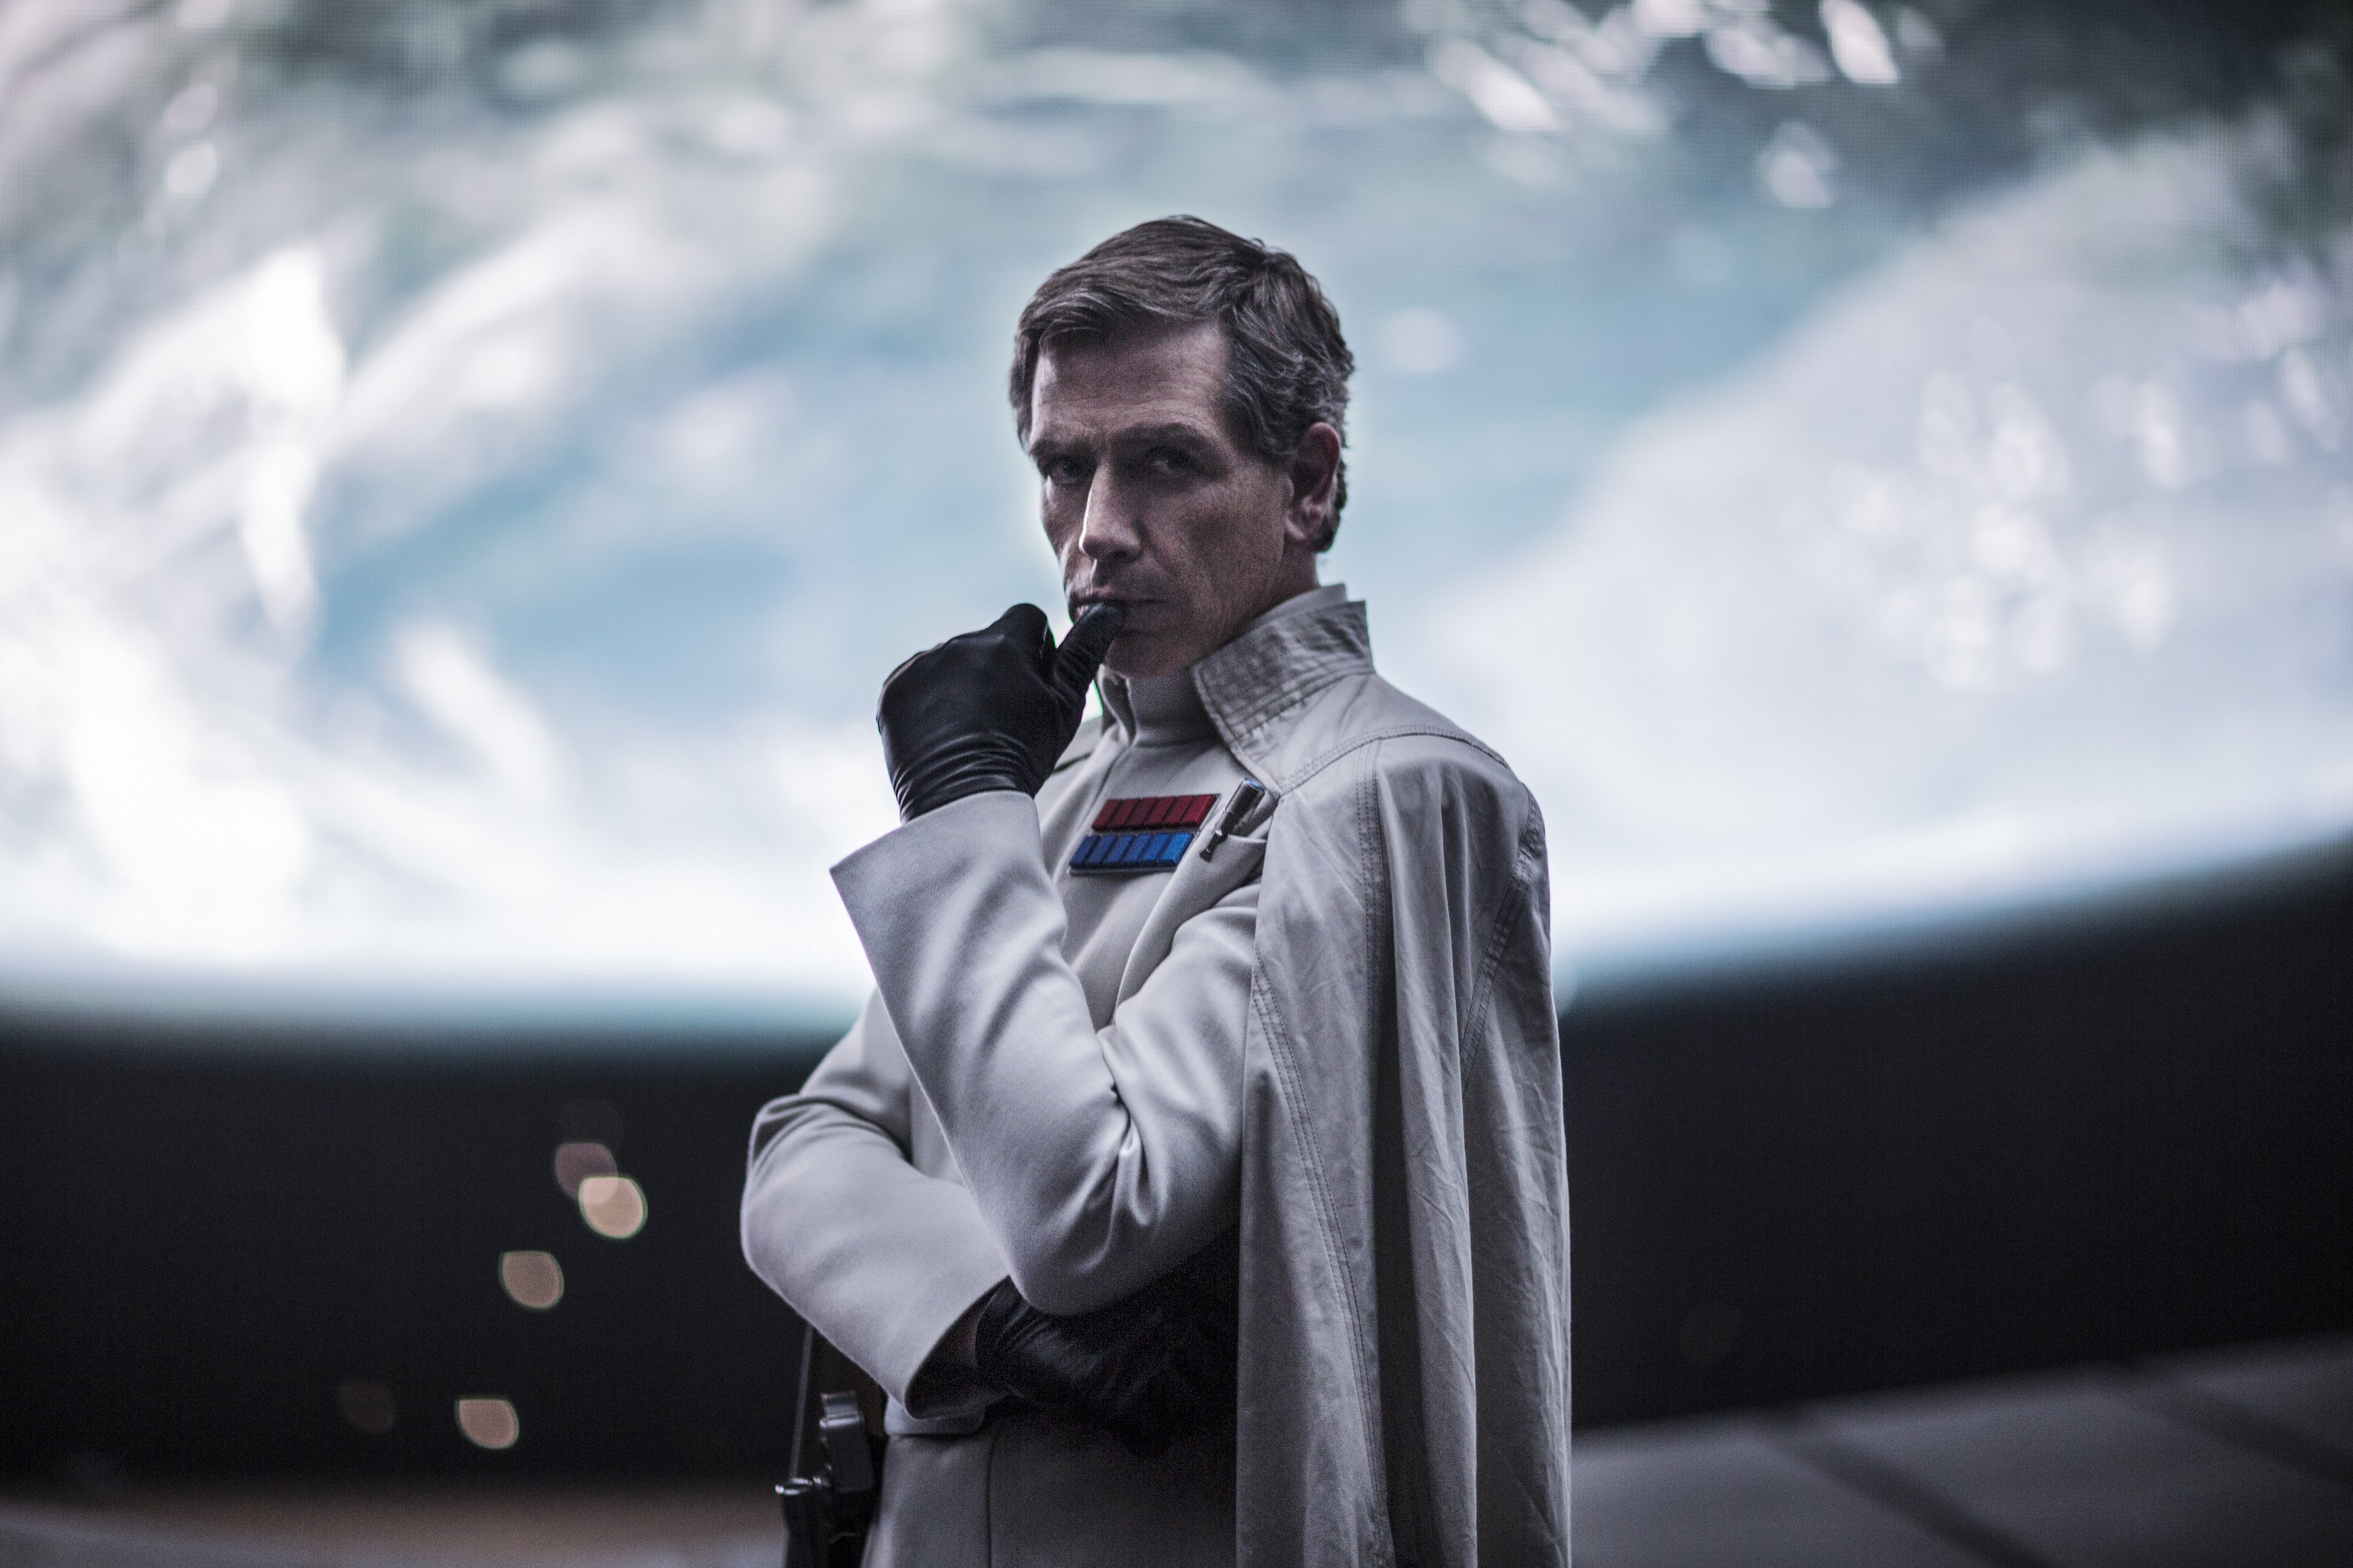 ben-mendelsohn-as-orson-krennic-in-rogue-one-a-star-wars-story